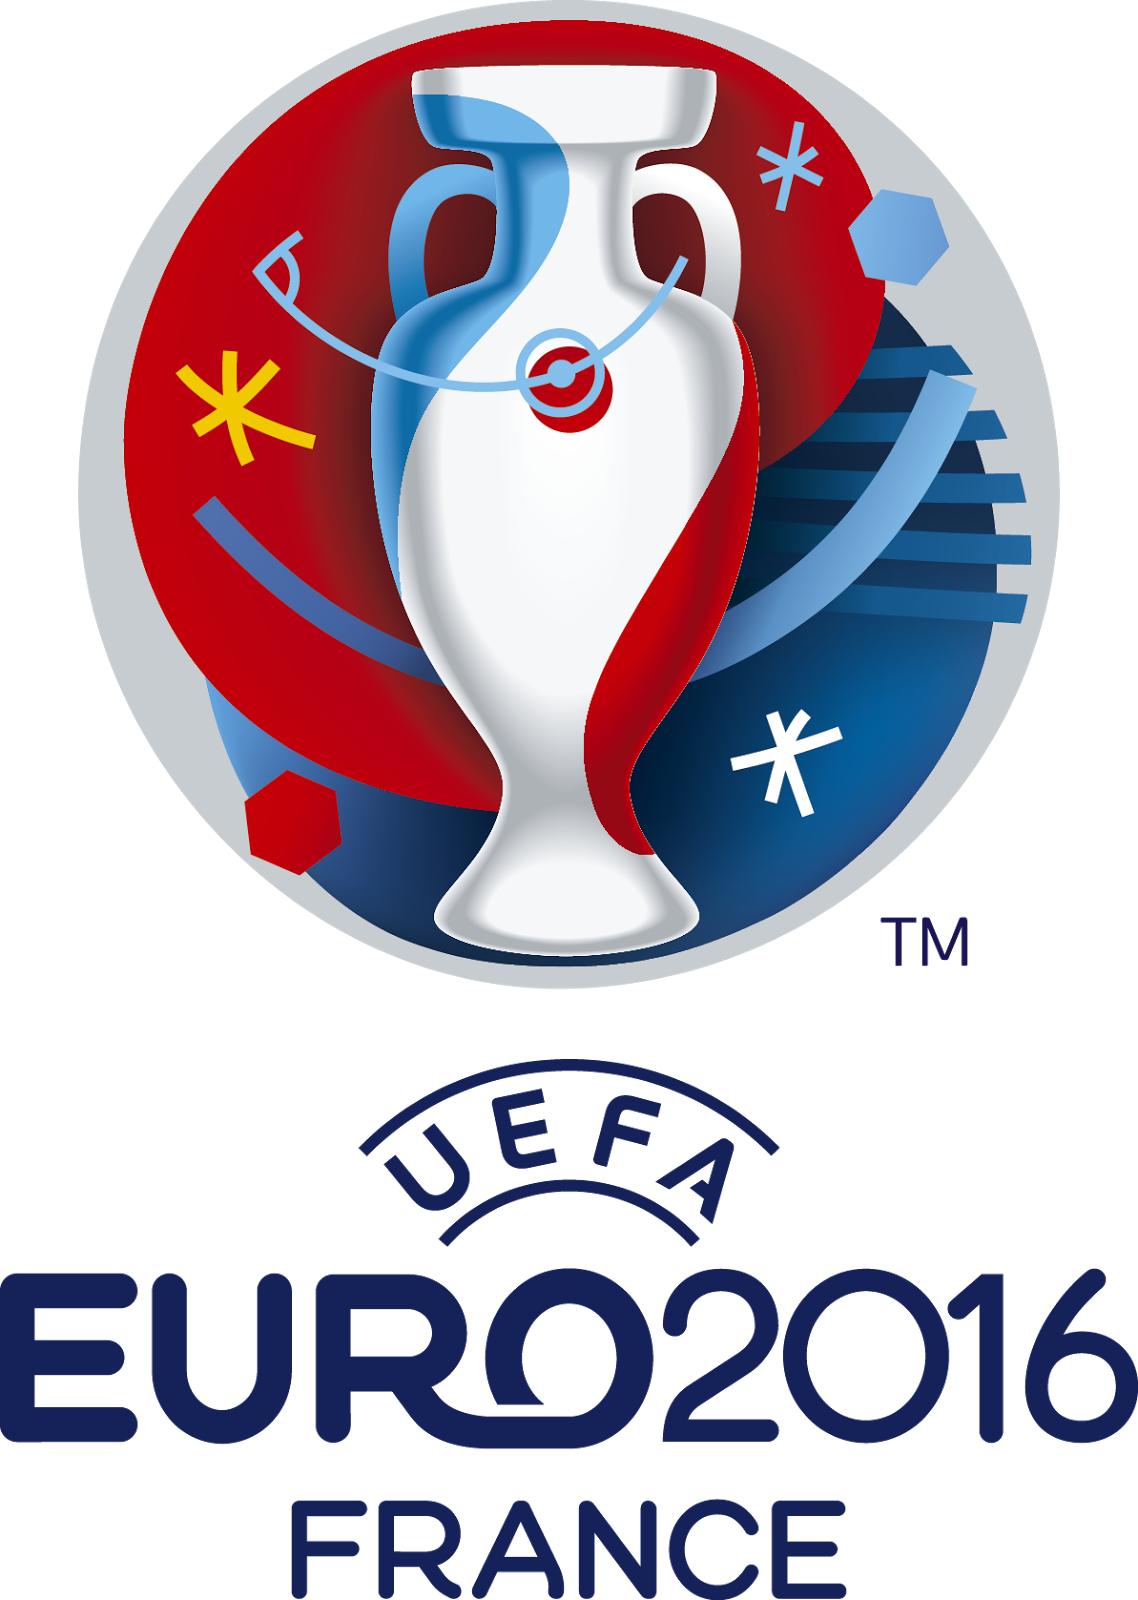 EURO - QUALIFICATION